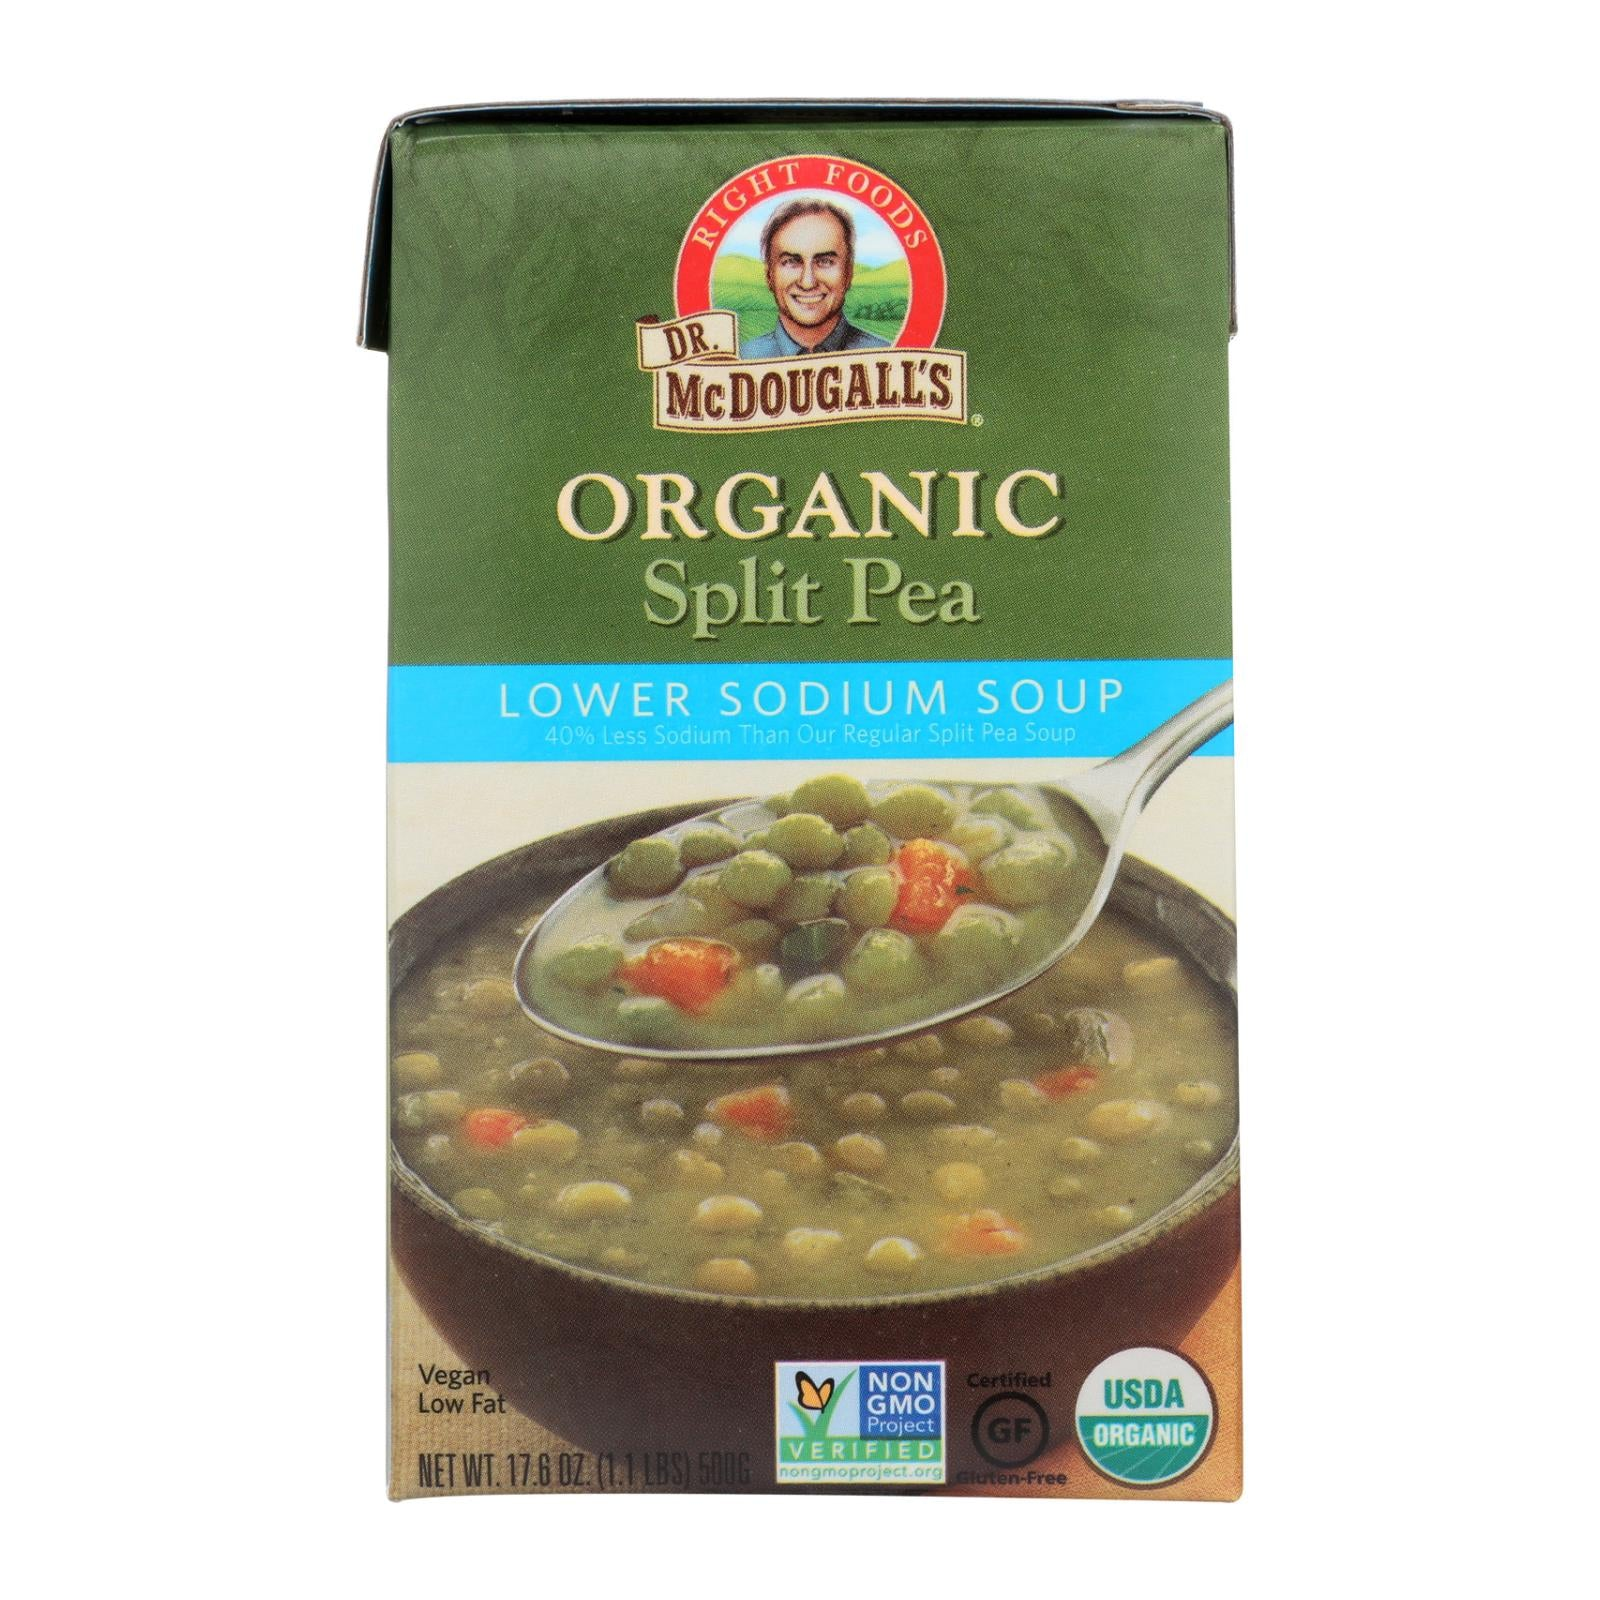 Dr. Mcdougall's Organic Split Pea Lower Sodium Soup - Case Of 6 - 17.6 Oz. HG1136266